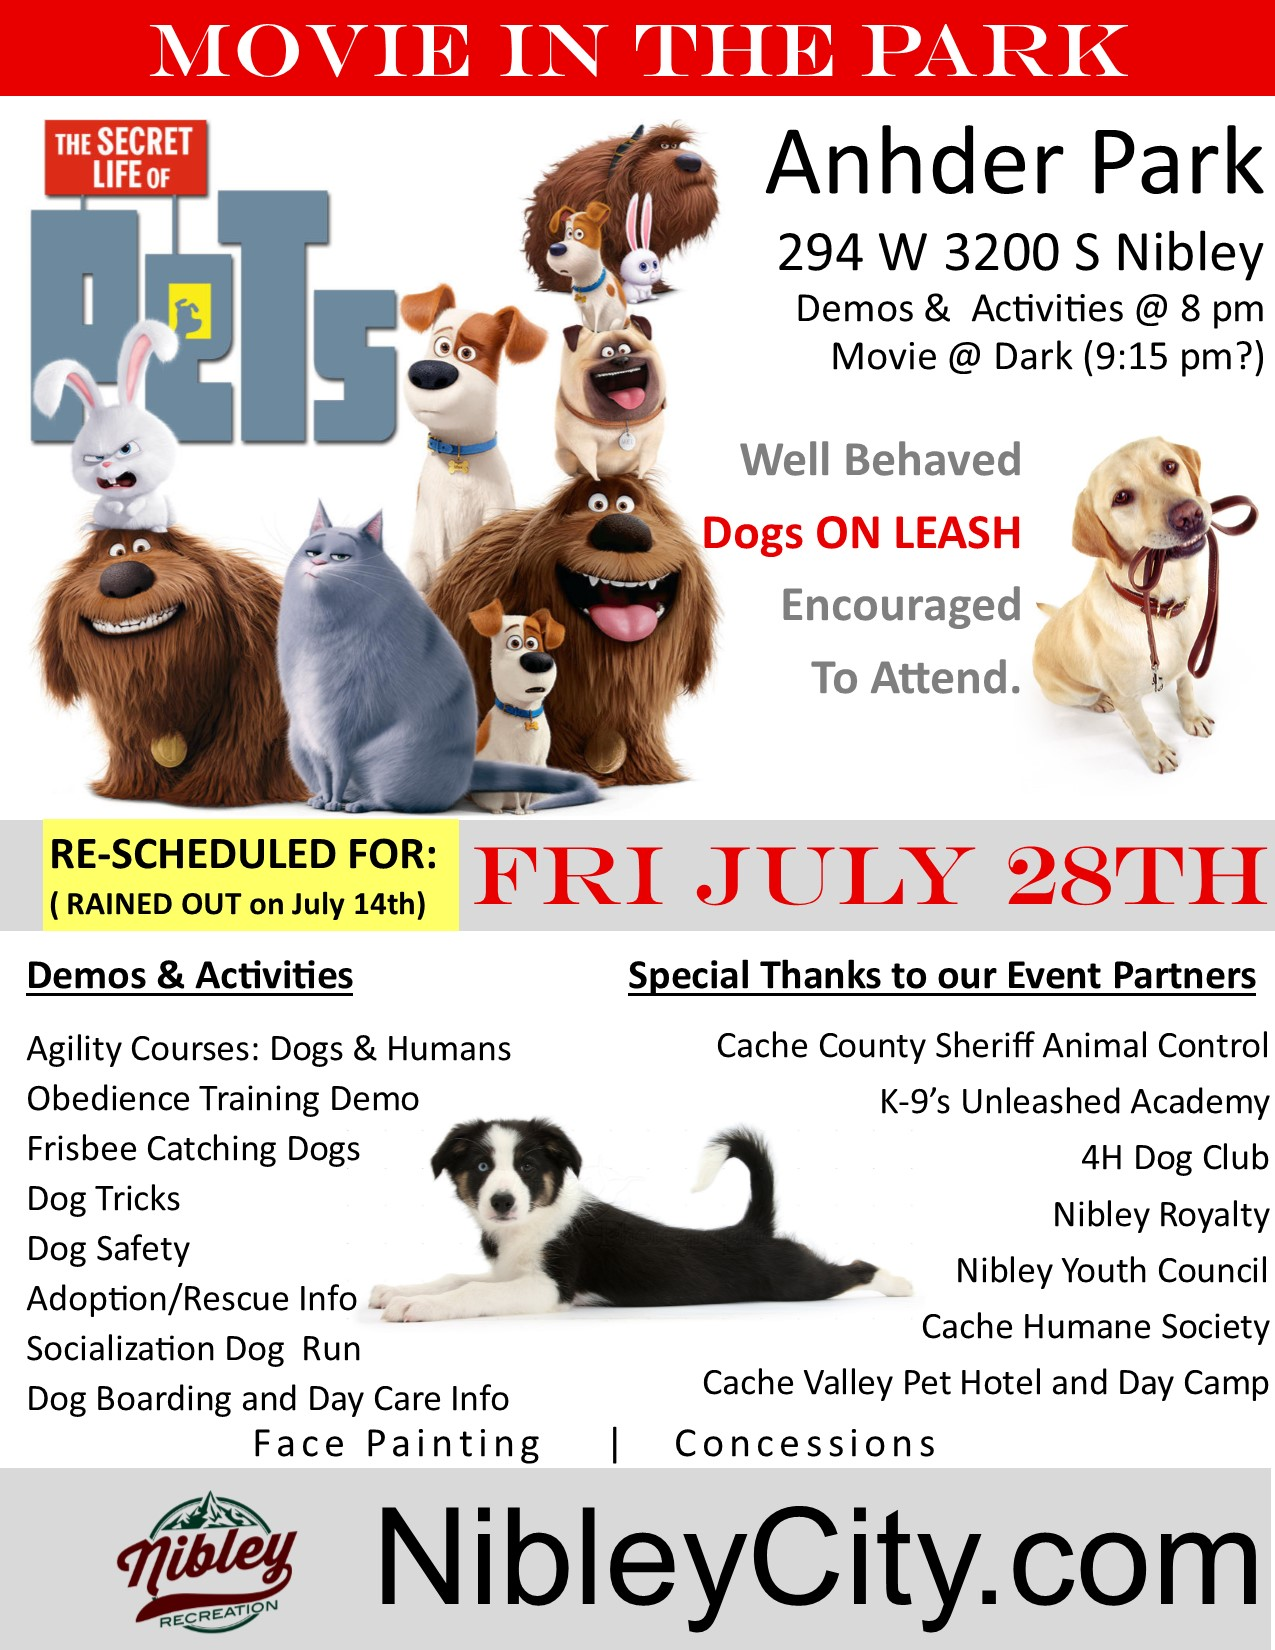 28TH Reschedule Secret Life of Pets Nibley Movie in Park 8.5x11 Flyer